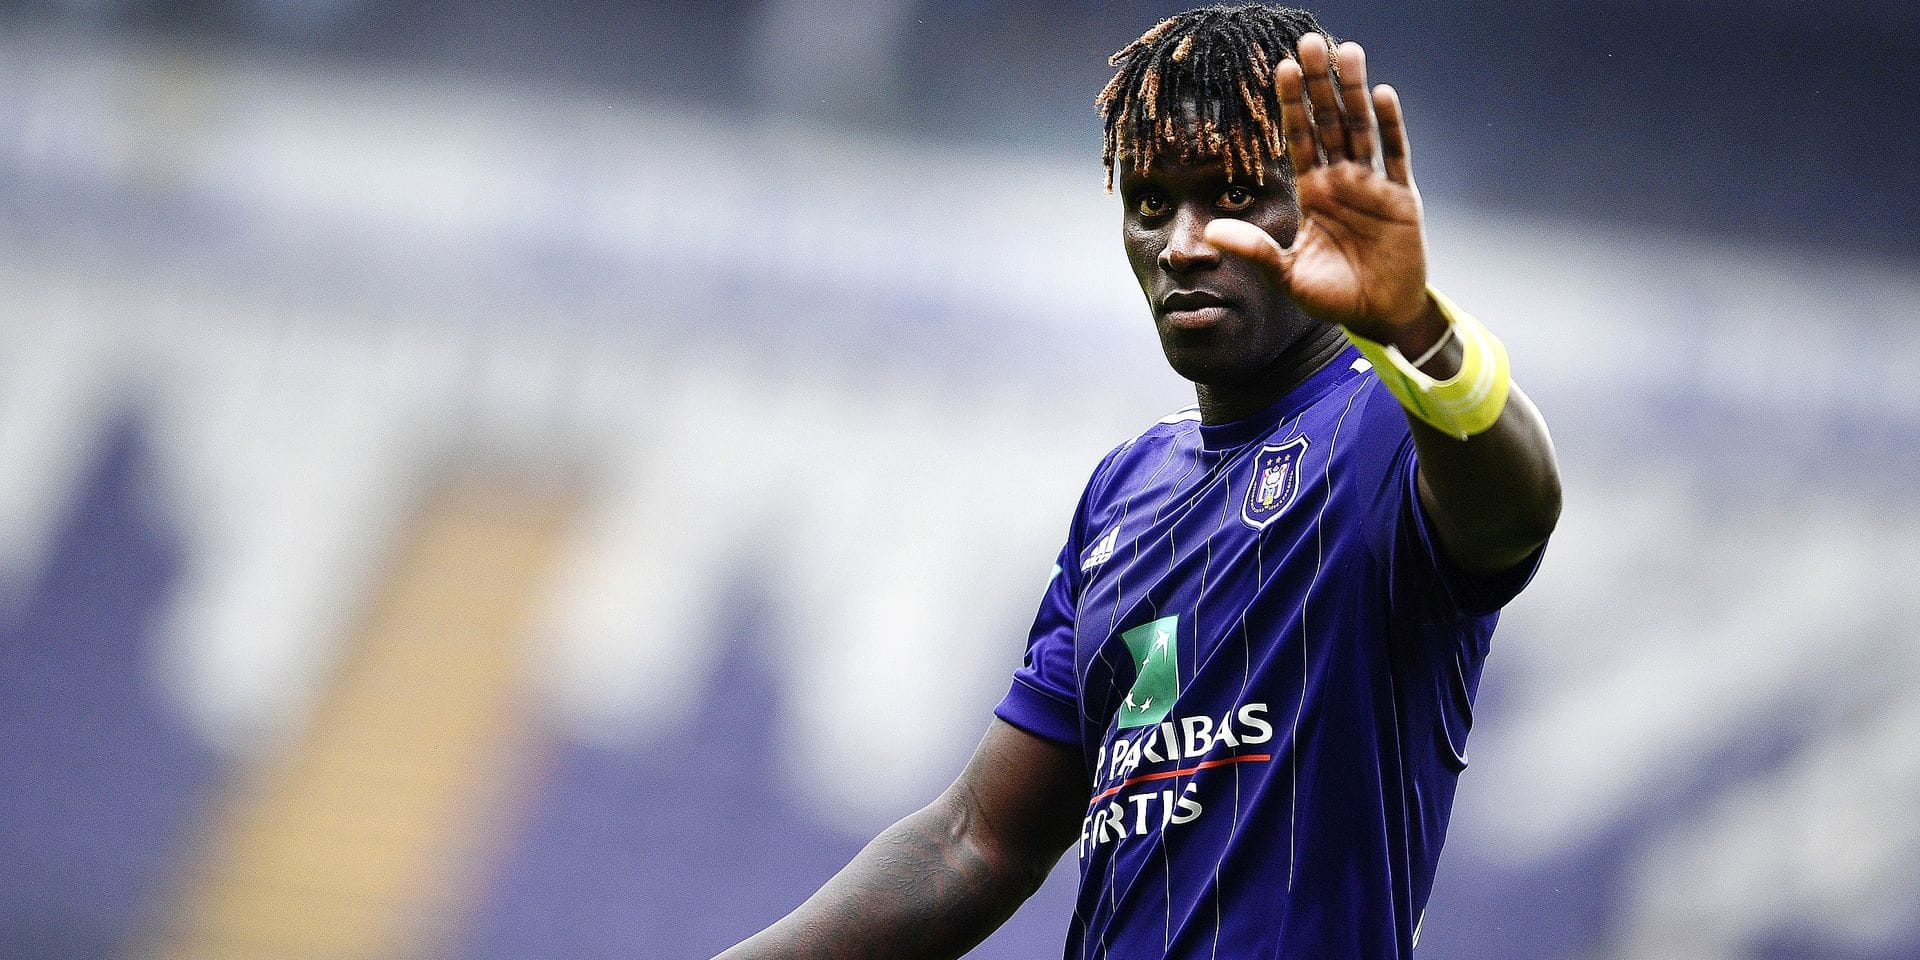 Anderlecht's Kara Mbodji pictured after the Jupiler Pro League match between RSC Anderlecht and KRC Genk, Sunday 20 May 2018 in Brussels, on the tenth and last day of the Play-Off 1 of the Belgian soccer championship. BELGA PHOTO YORICK JANSENS